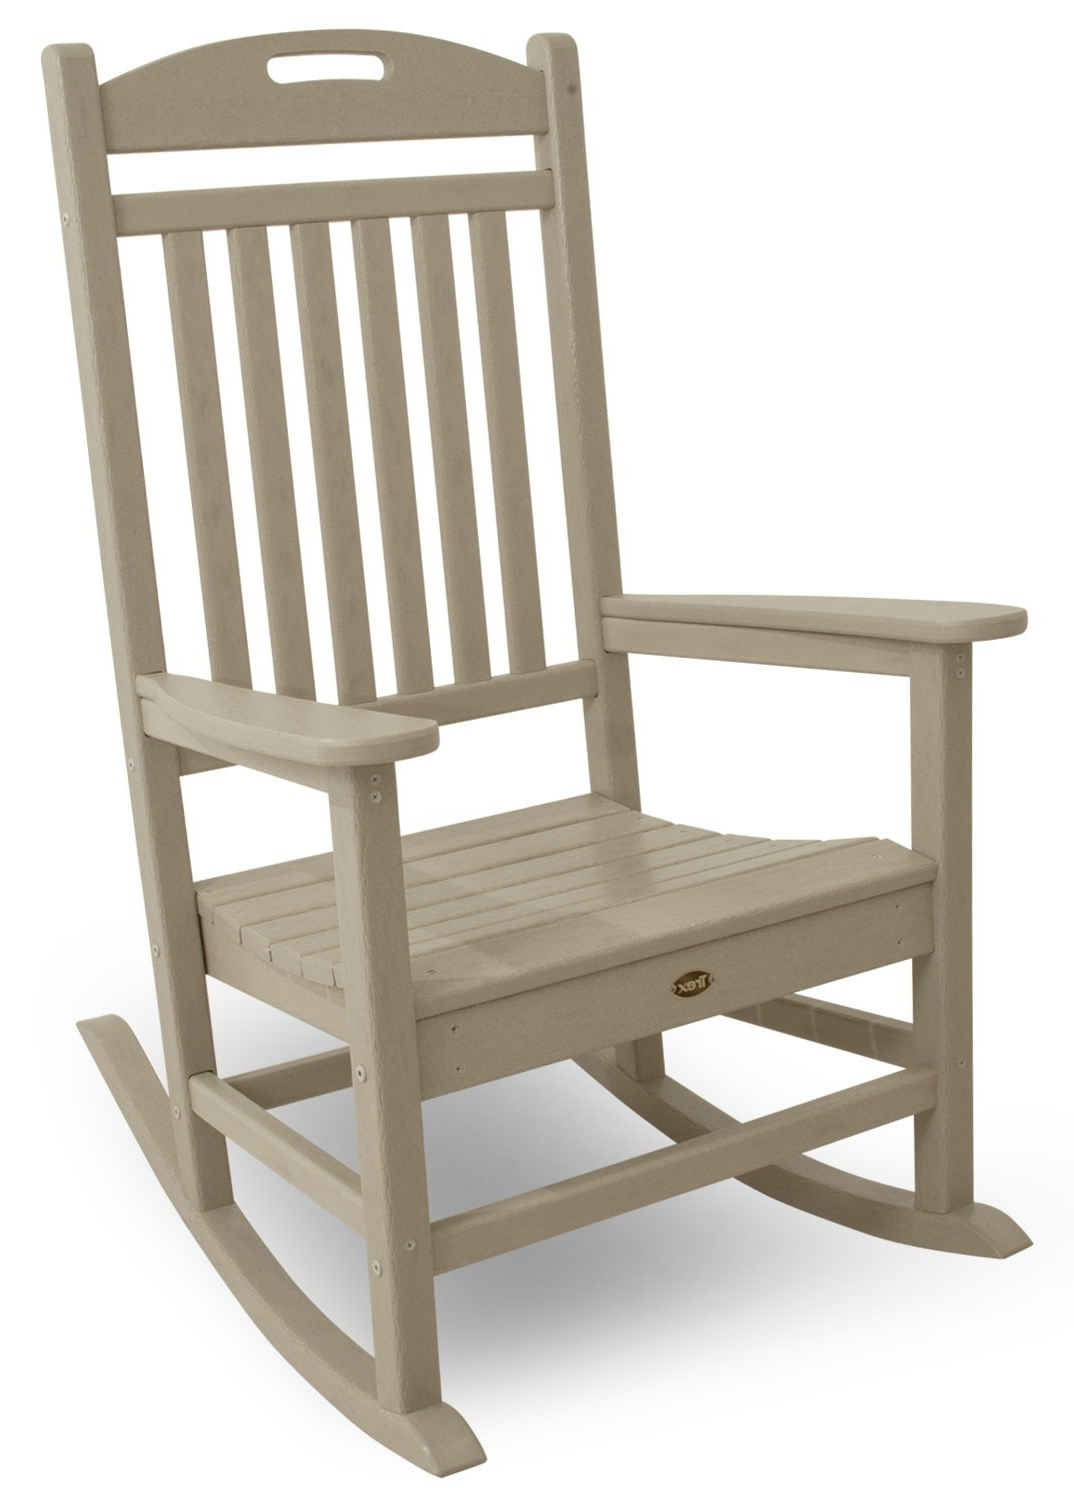 Most Recently Released Yacht Club Rocking Chair Pertaining To Patio Rocking Chairs And Gliders (View 8 of 20)